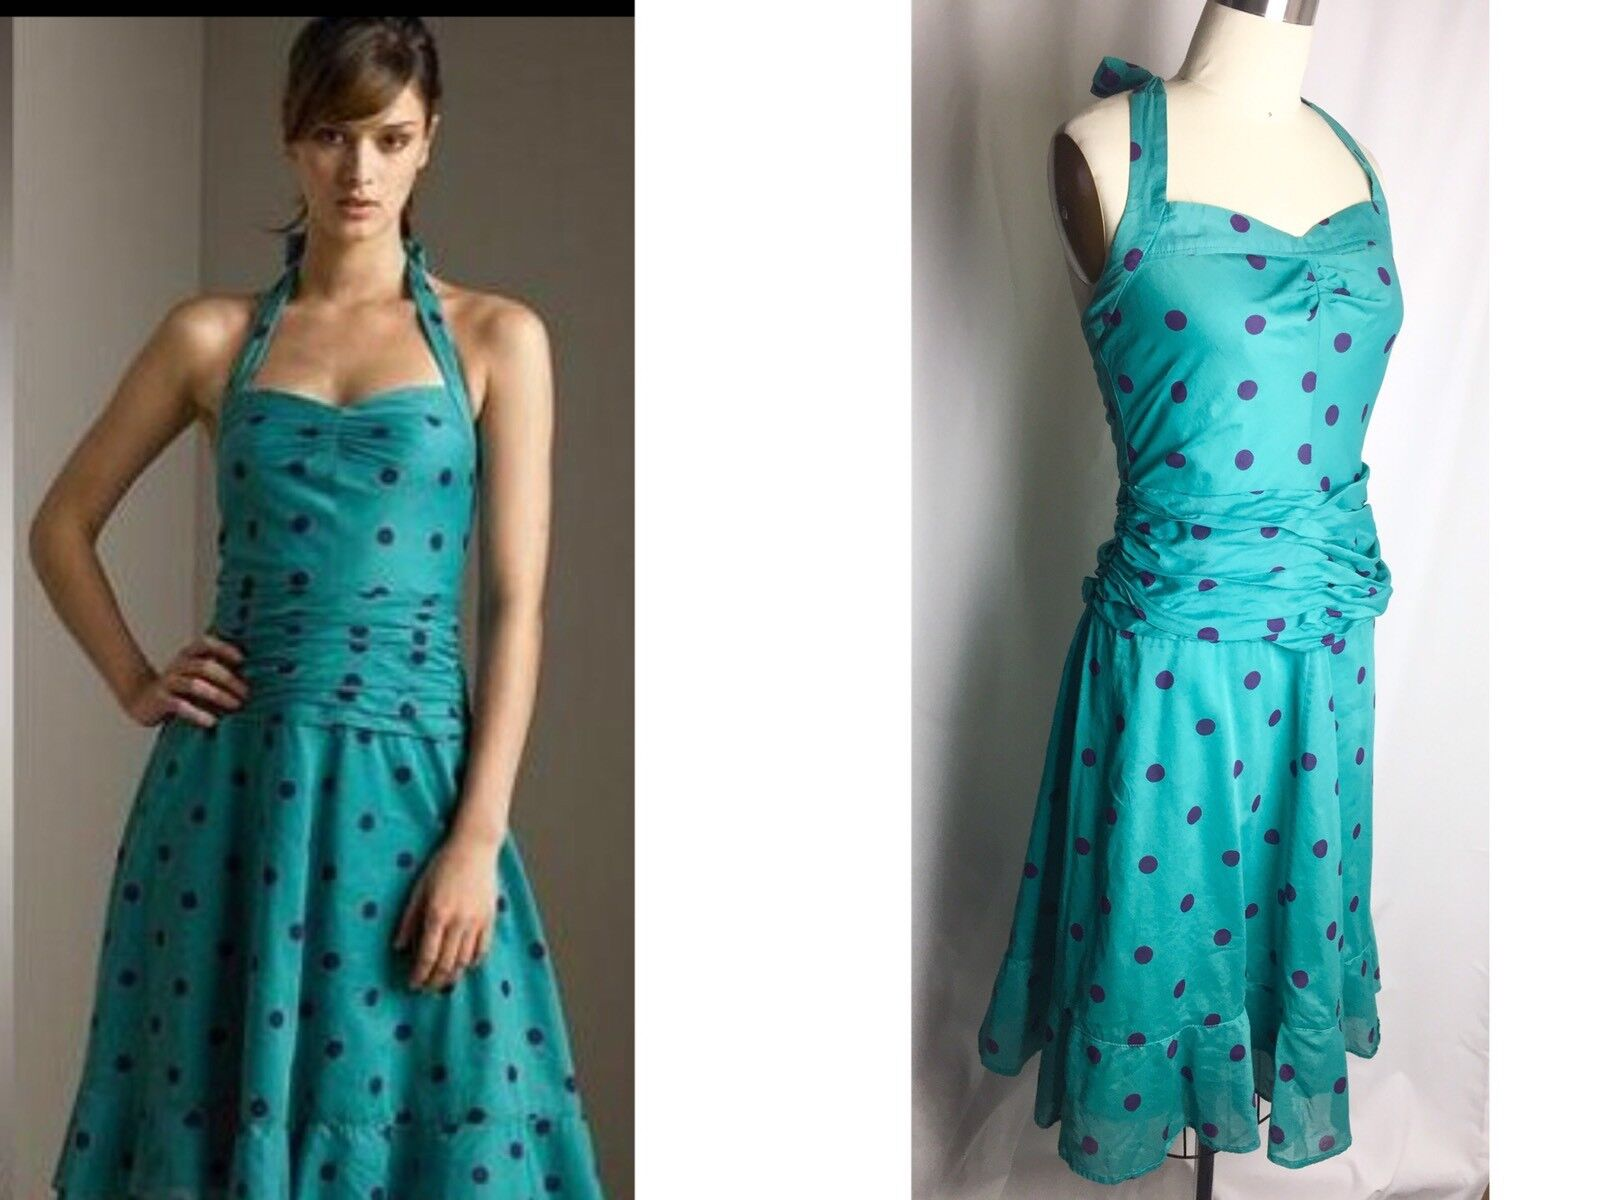 MARC JACOBS Cotton Volie Greeen & bluee Polka Dot Halter Dress Size